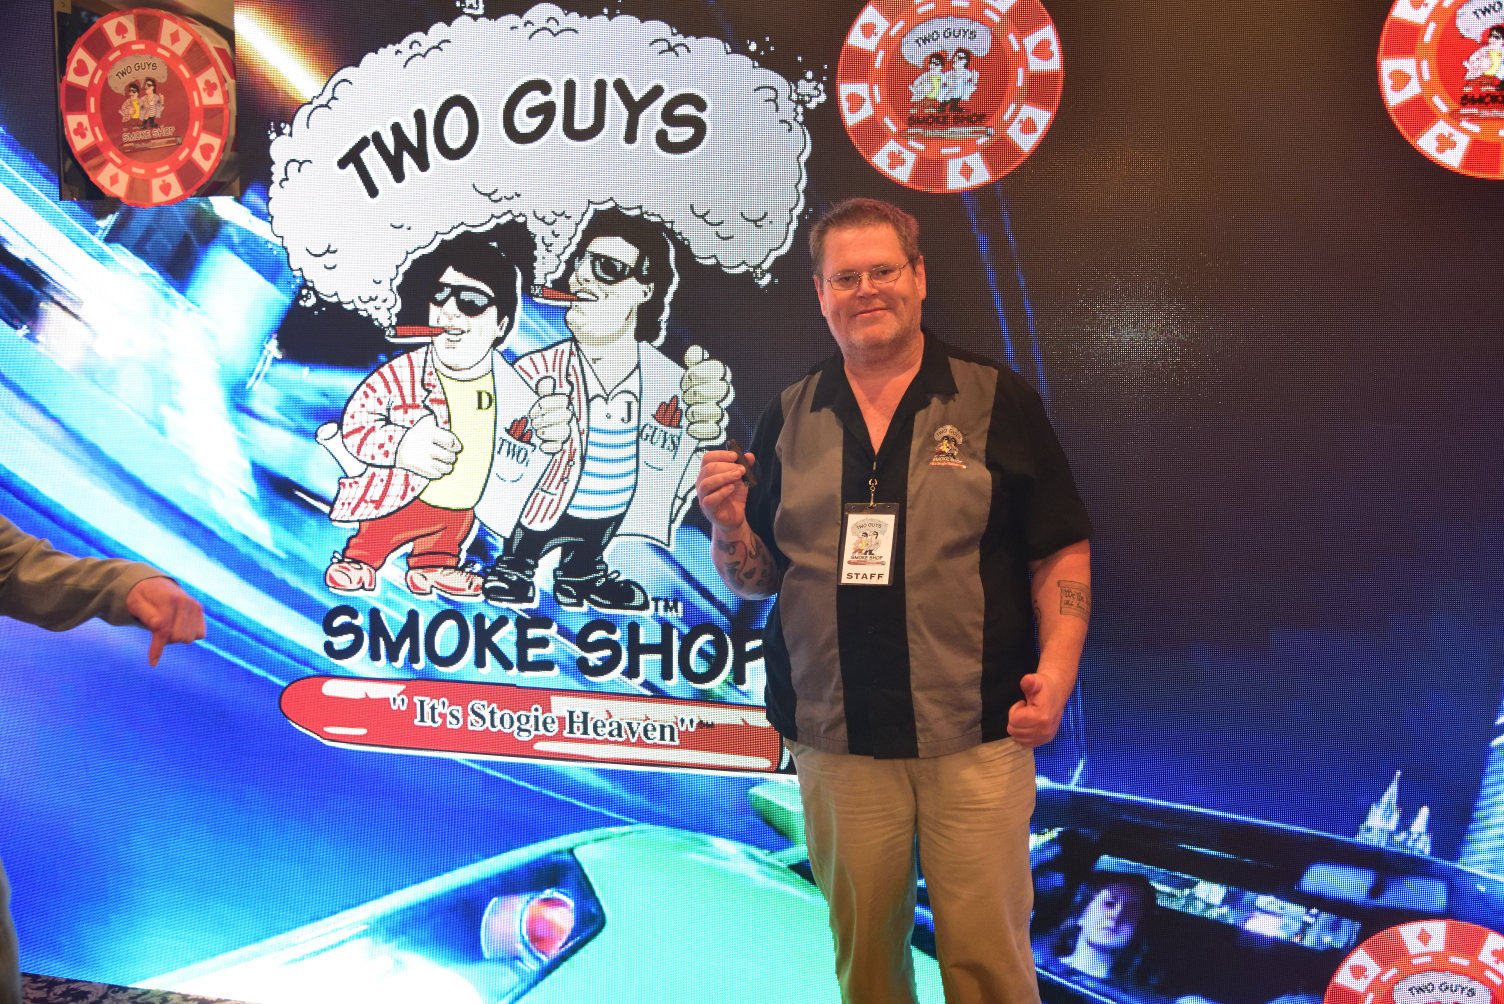 Two Guys Smoke Shop 34th Anniversary